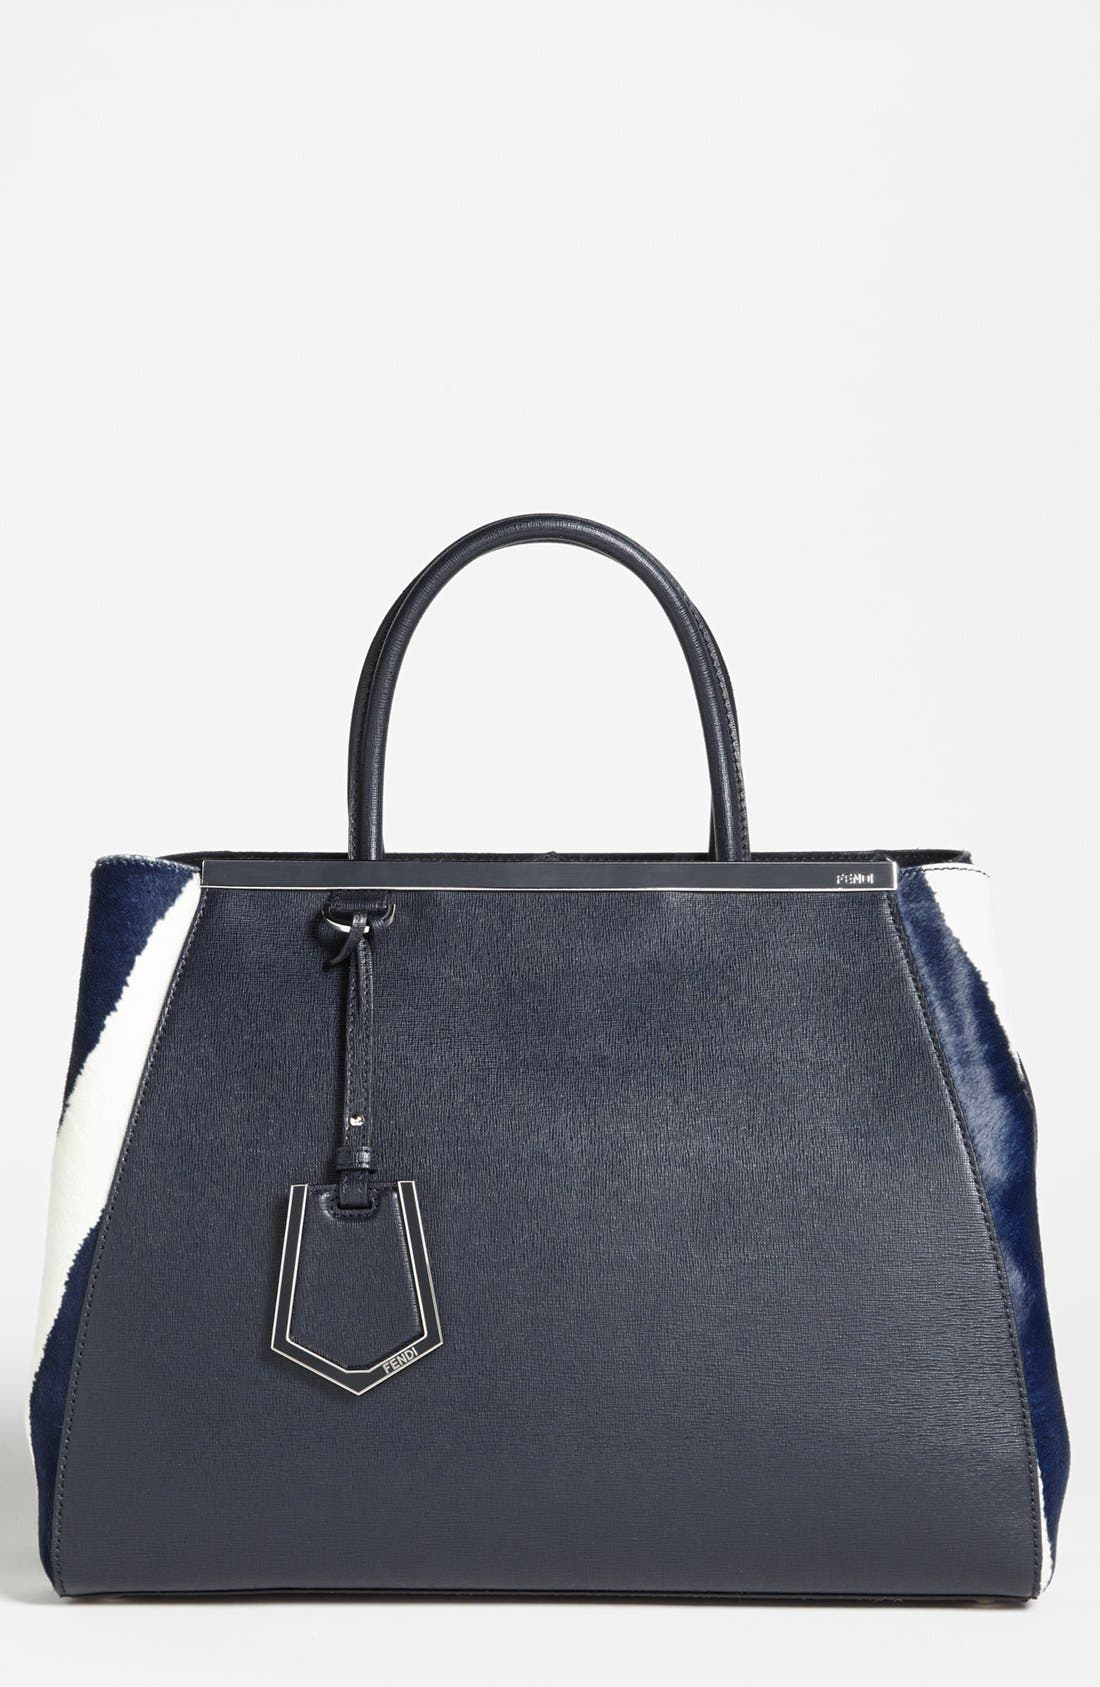 Main Image - Fendi '2Jours - Medium' Calf Hair Shopper